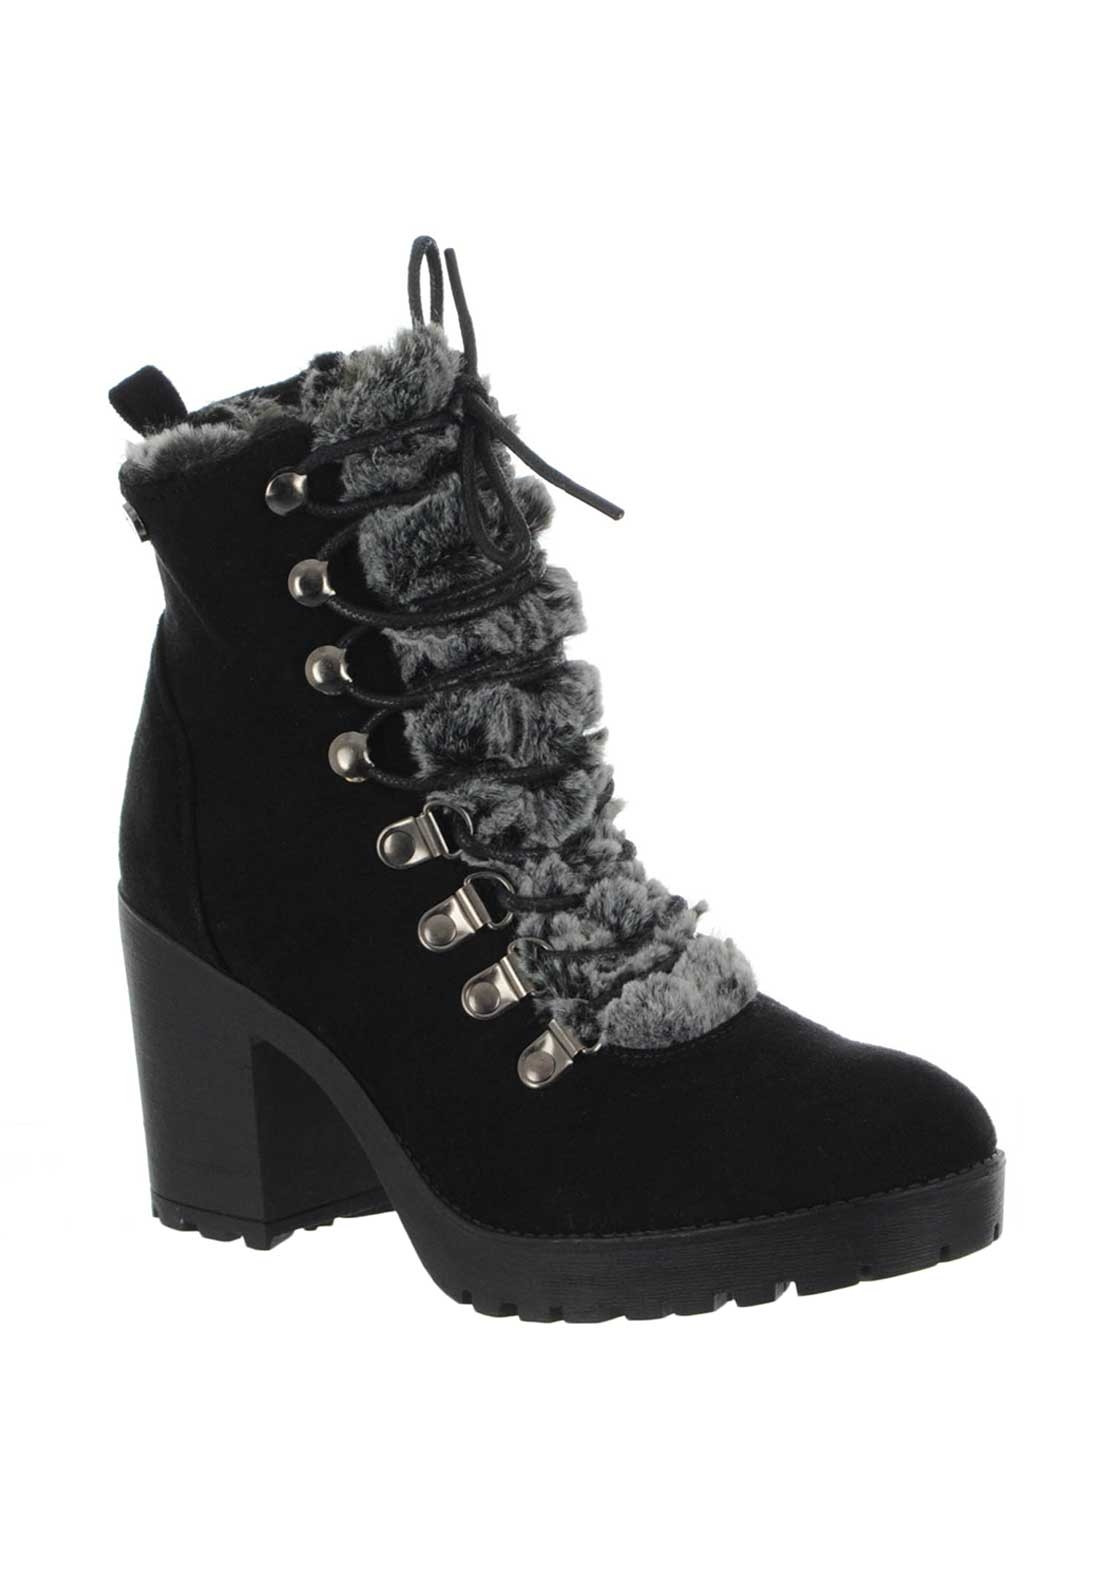 Xti Womens Faux Fur Trim Lace up Boots, Black